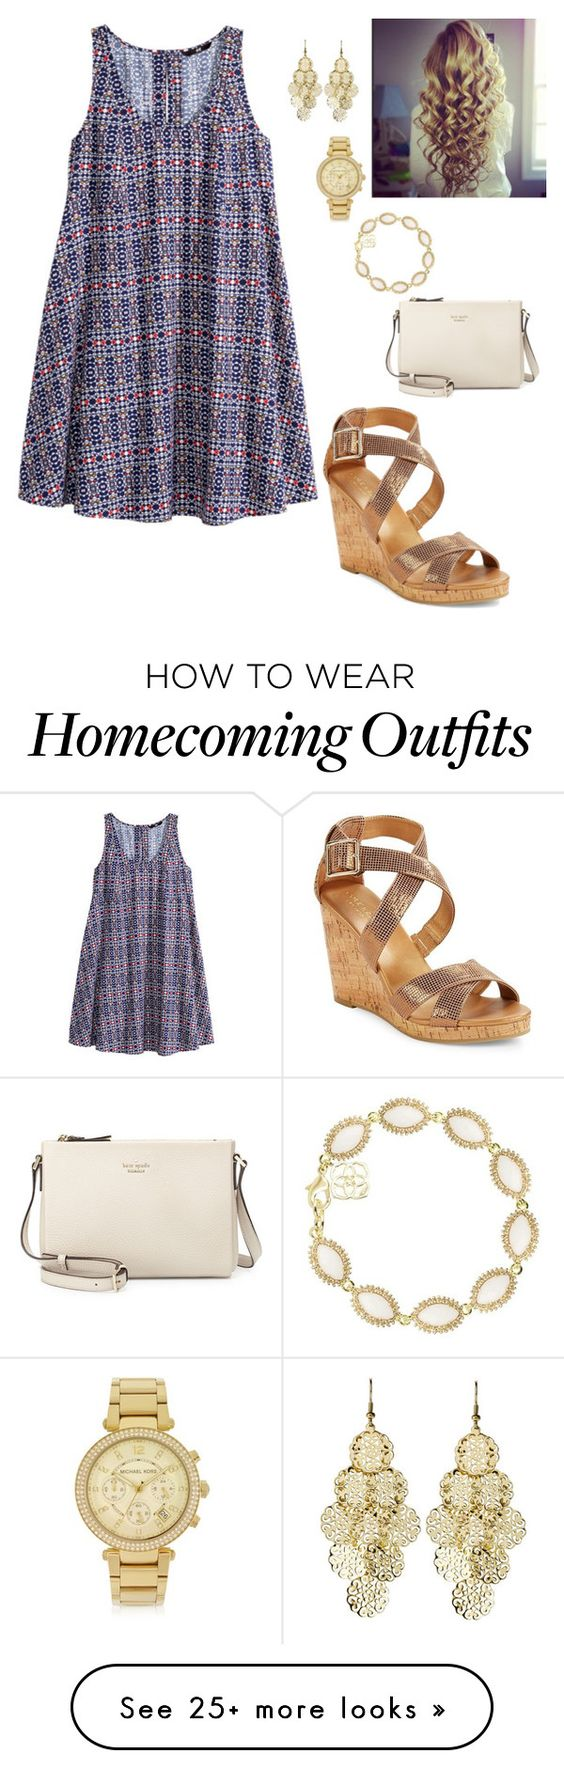 """""""Homecoming day 3: Stay Classy Wednesday"""" by swwbama on Polyvore featuring H&M, Cole Haan, Alexia Crawford, Michael Kors, Kate Spade and Kendra Scott"""